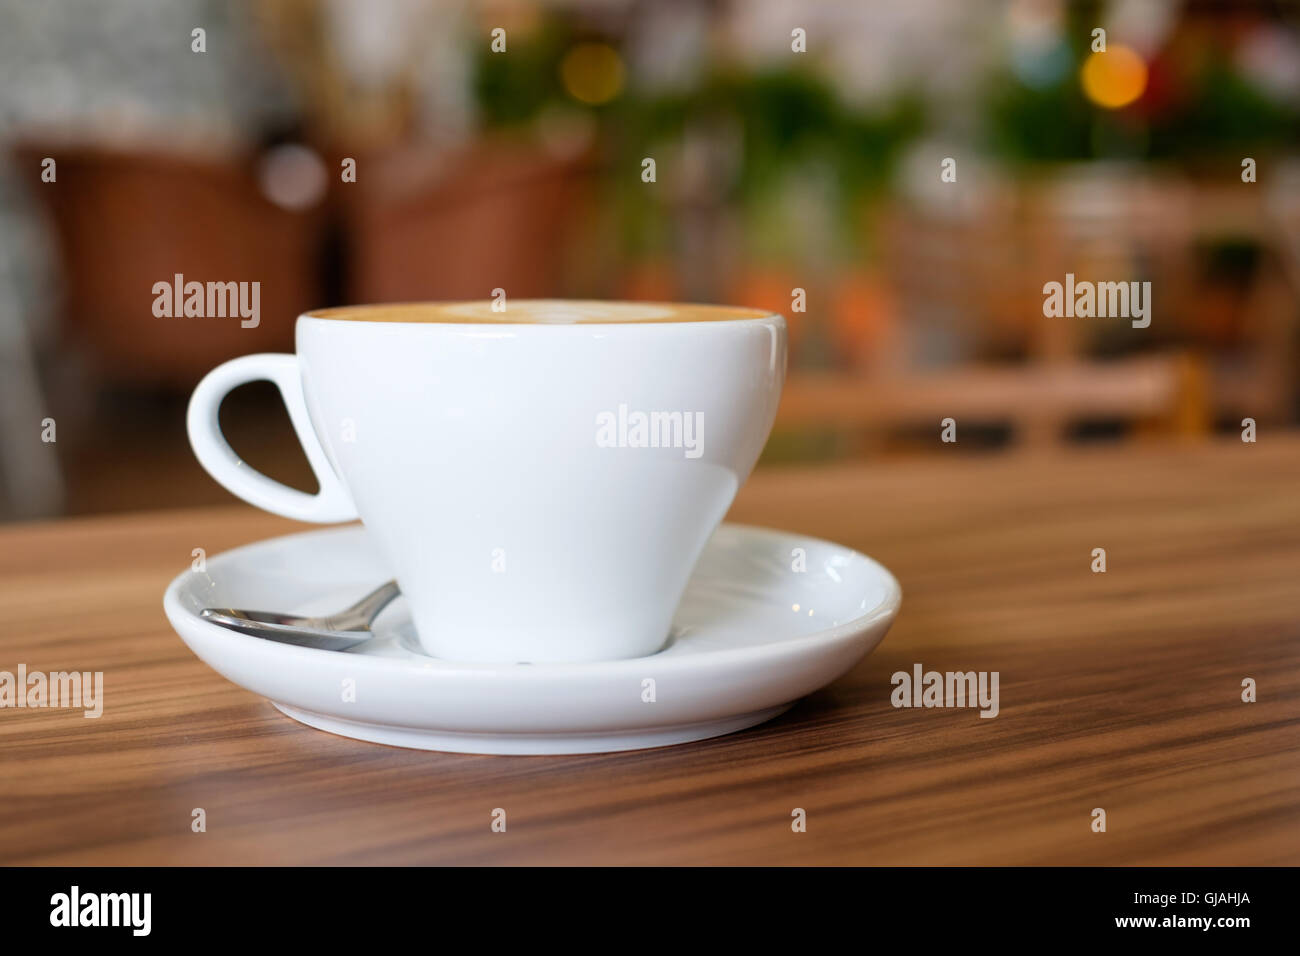 8237aabef29 A white mug cup containing hot coffee on wooden table in cafe. - Stock Image